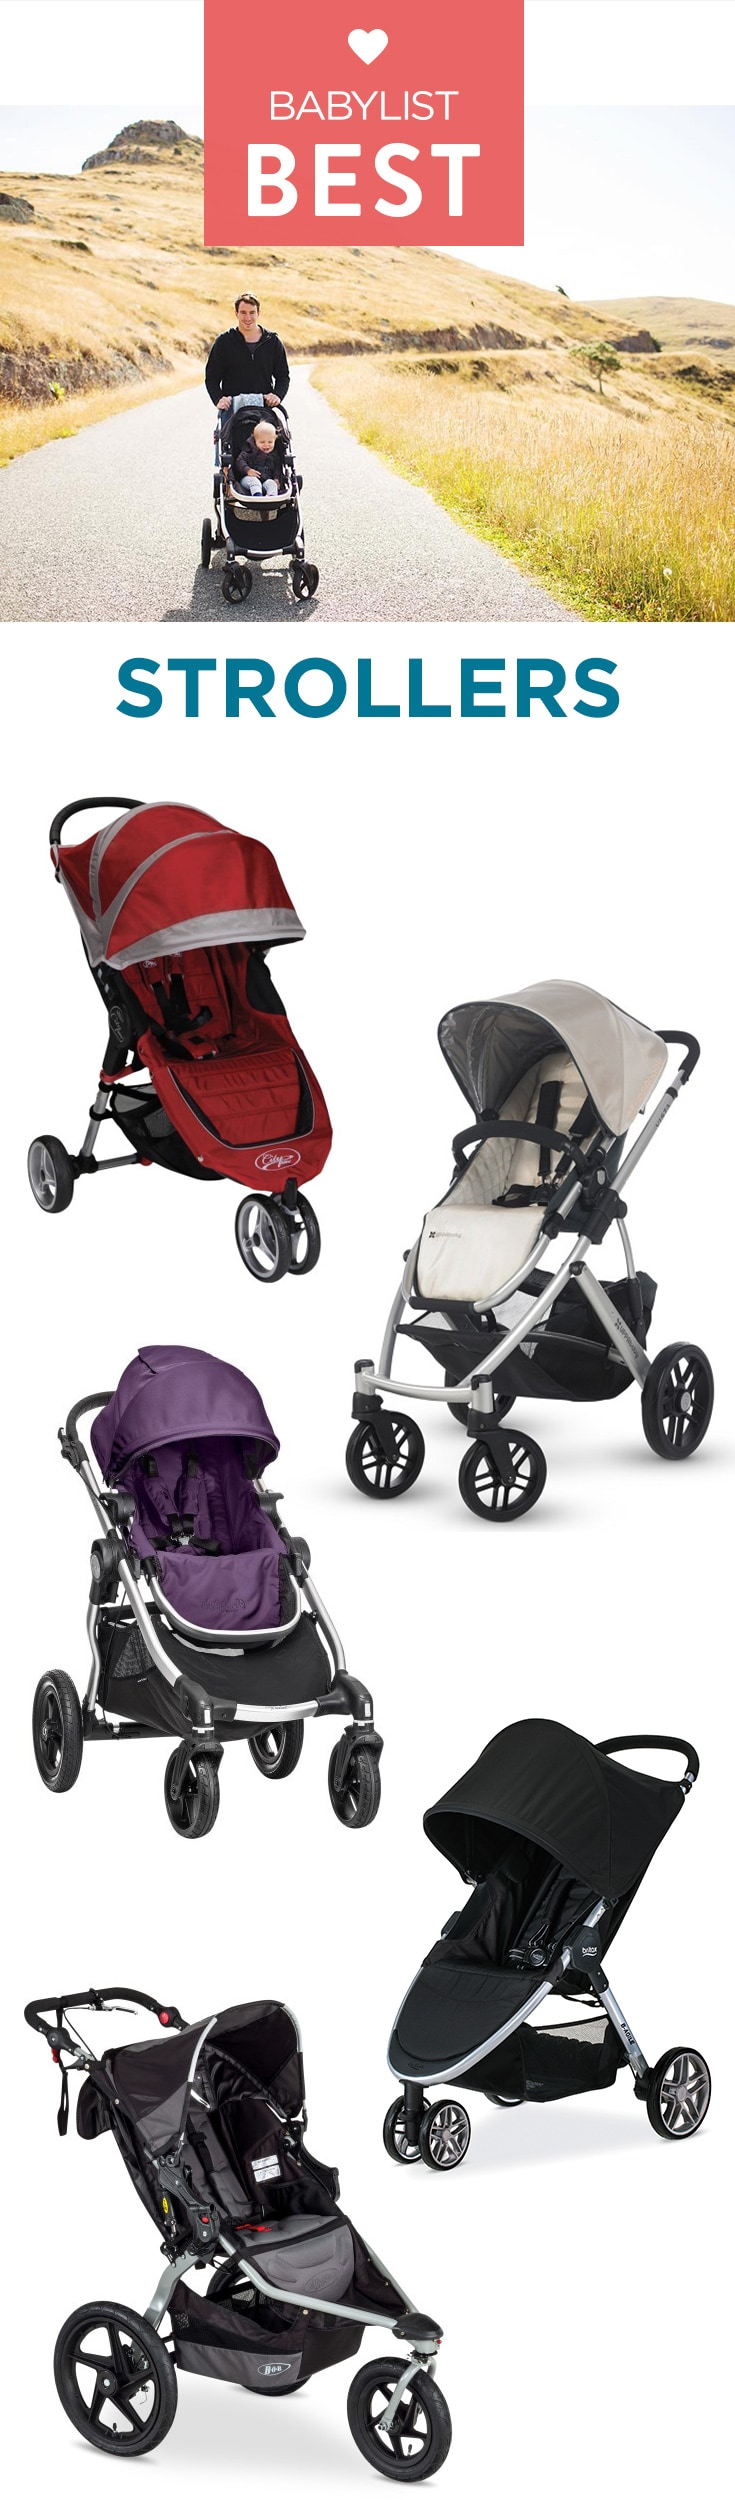 Find out which travel system, lightweight, jogging, budget luxury and all terrain models topped our list. Add all your newborn must haves including strollers to your Babylist baby registry.  Babylist lets you add any item from any store to one registry.